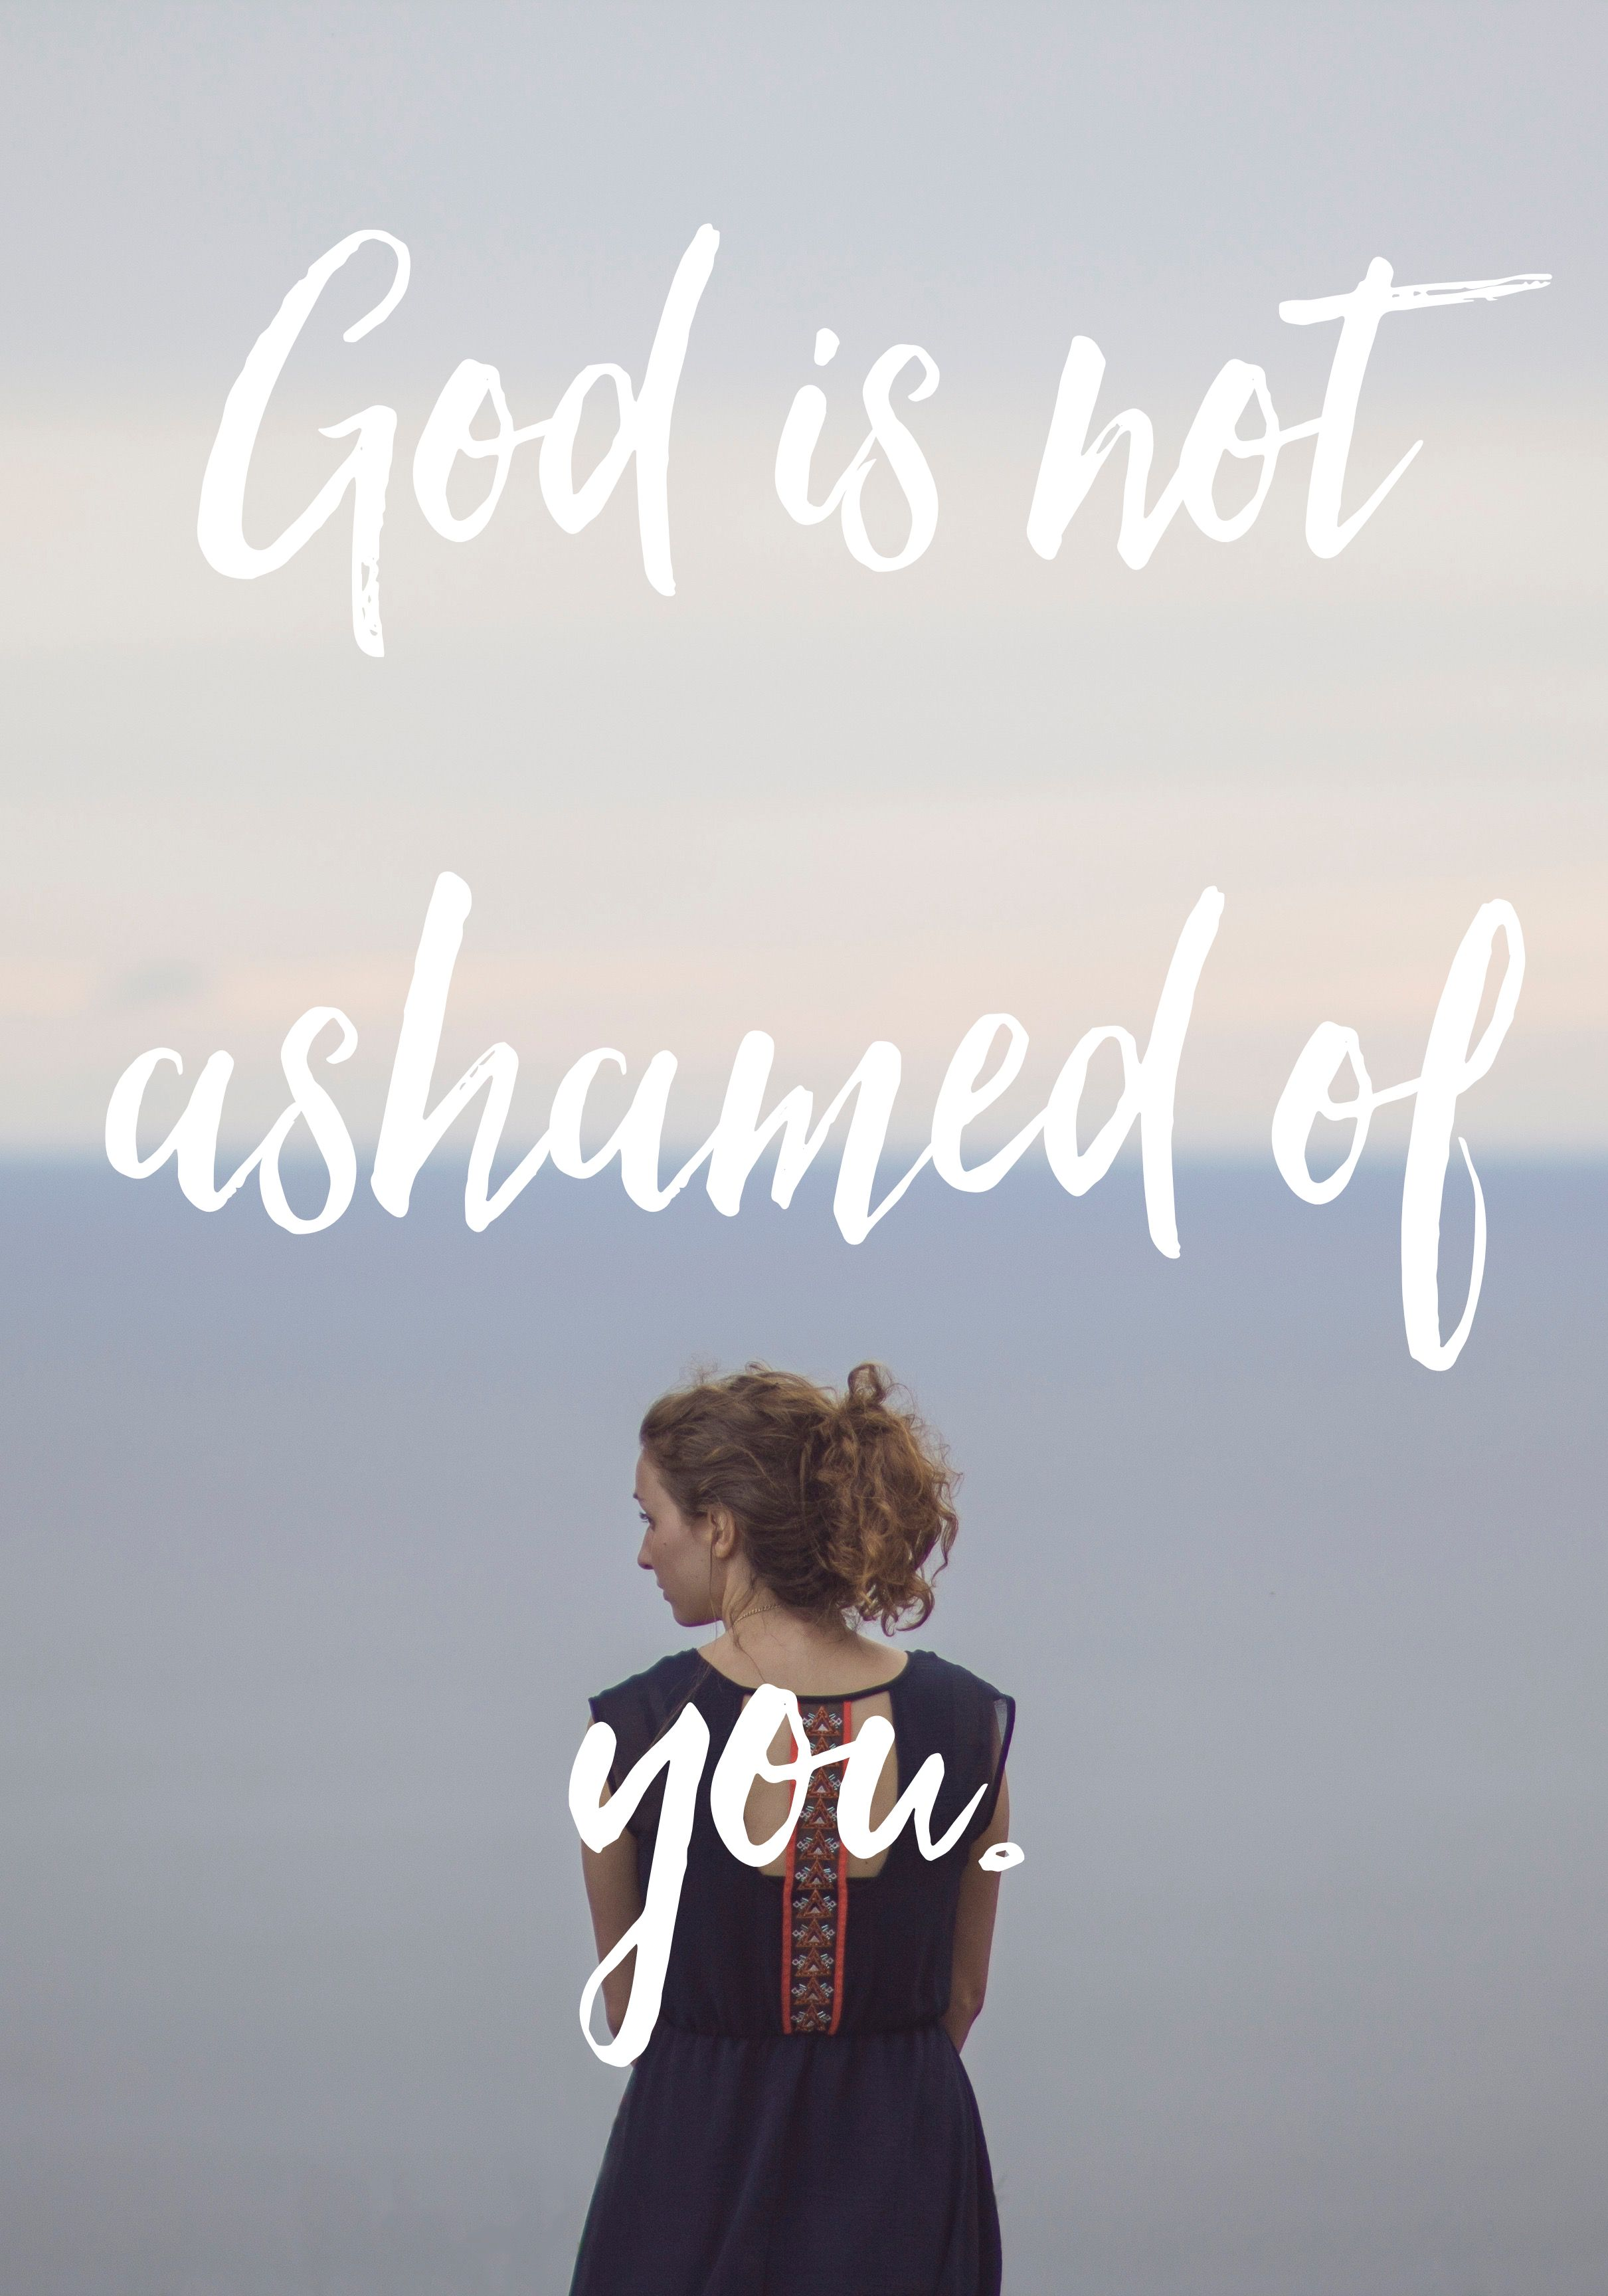 He LOVES you passionately